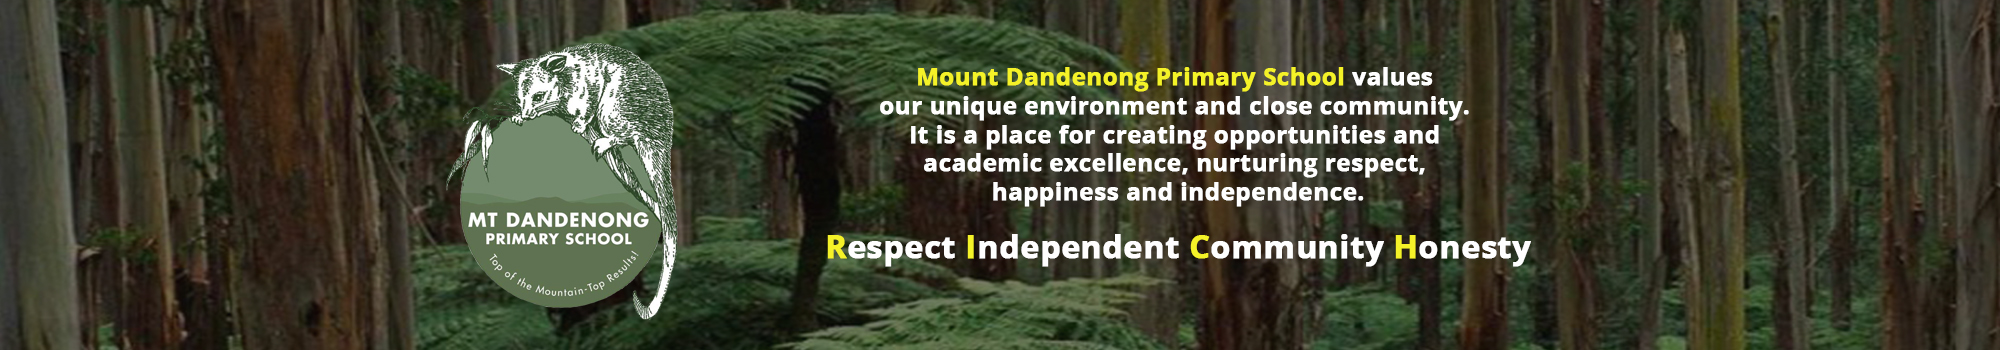 Mount Dandenong Primary School